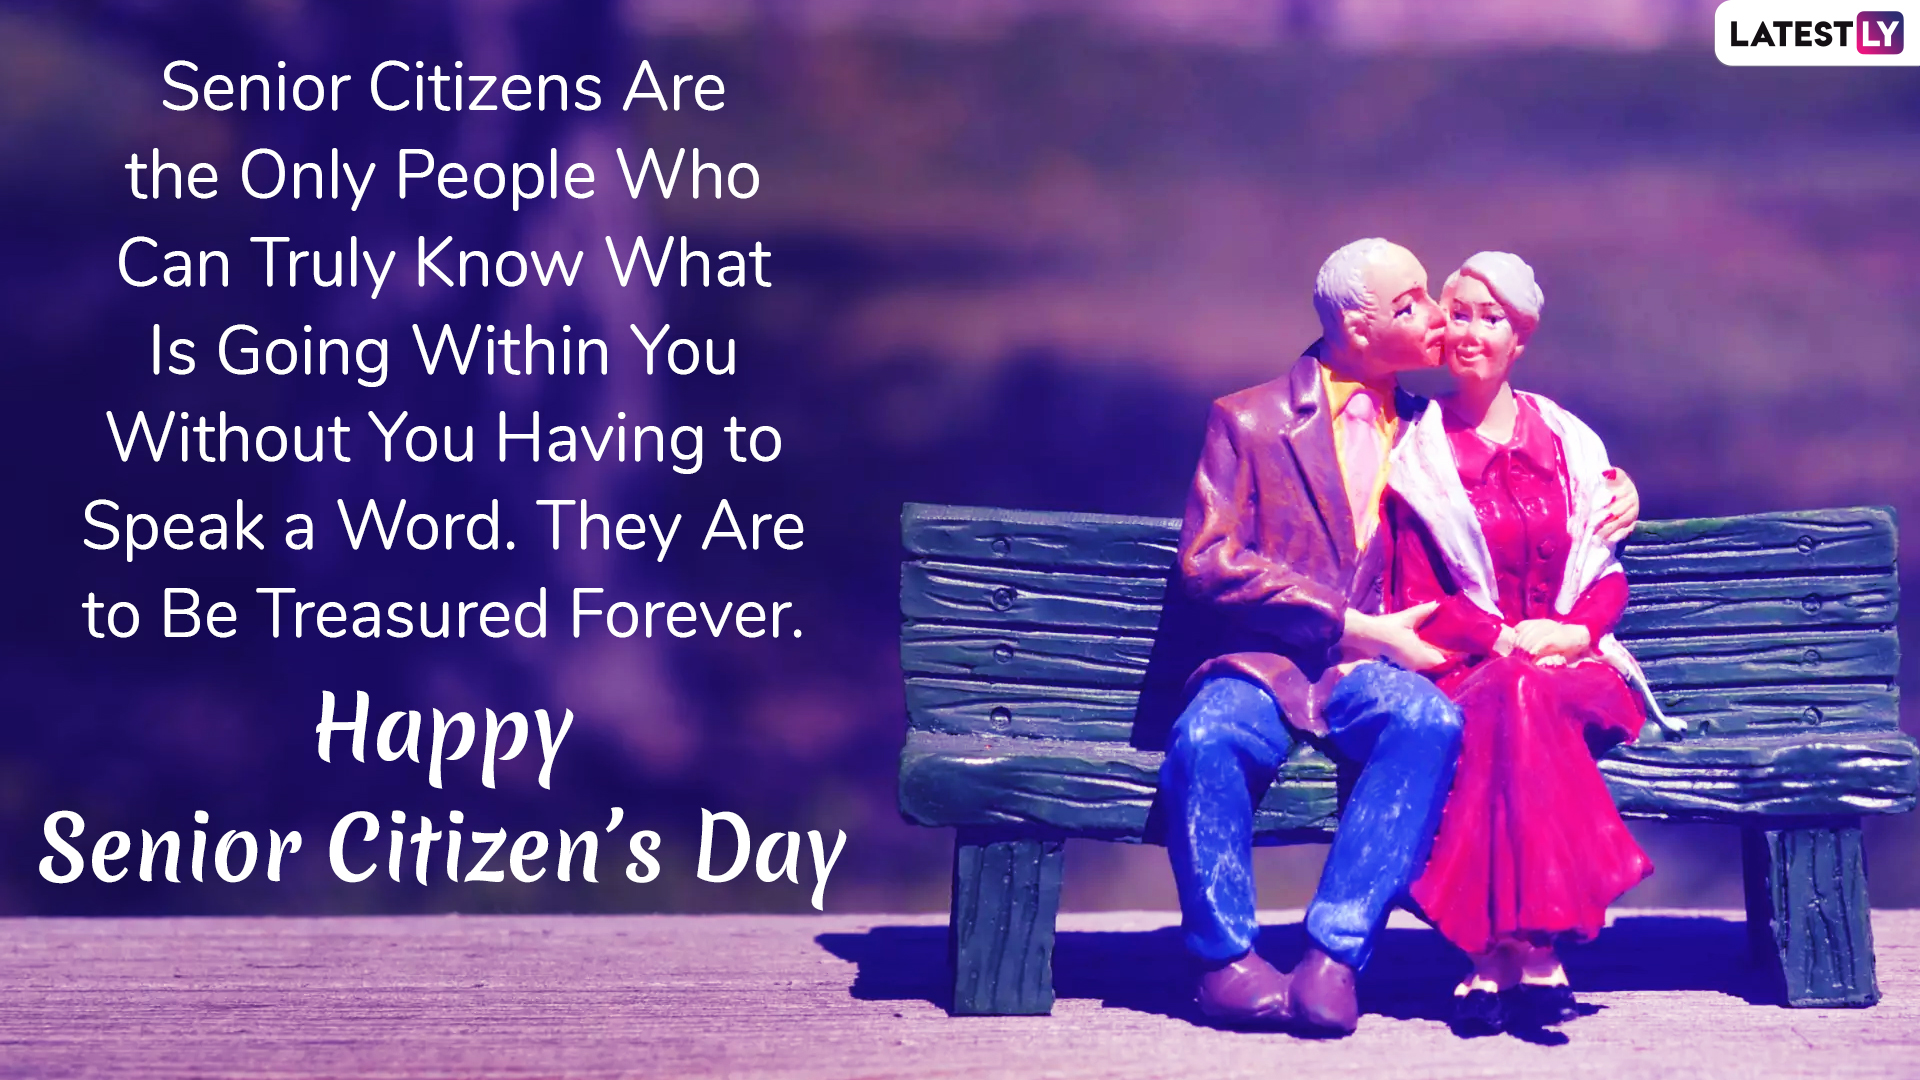 World Senior Citizen S Day 2019 Wishes Whatsapp Messages Gif Images Sms Quotes And Greetings To Send On August 21 Latestly